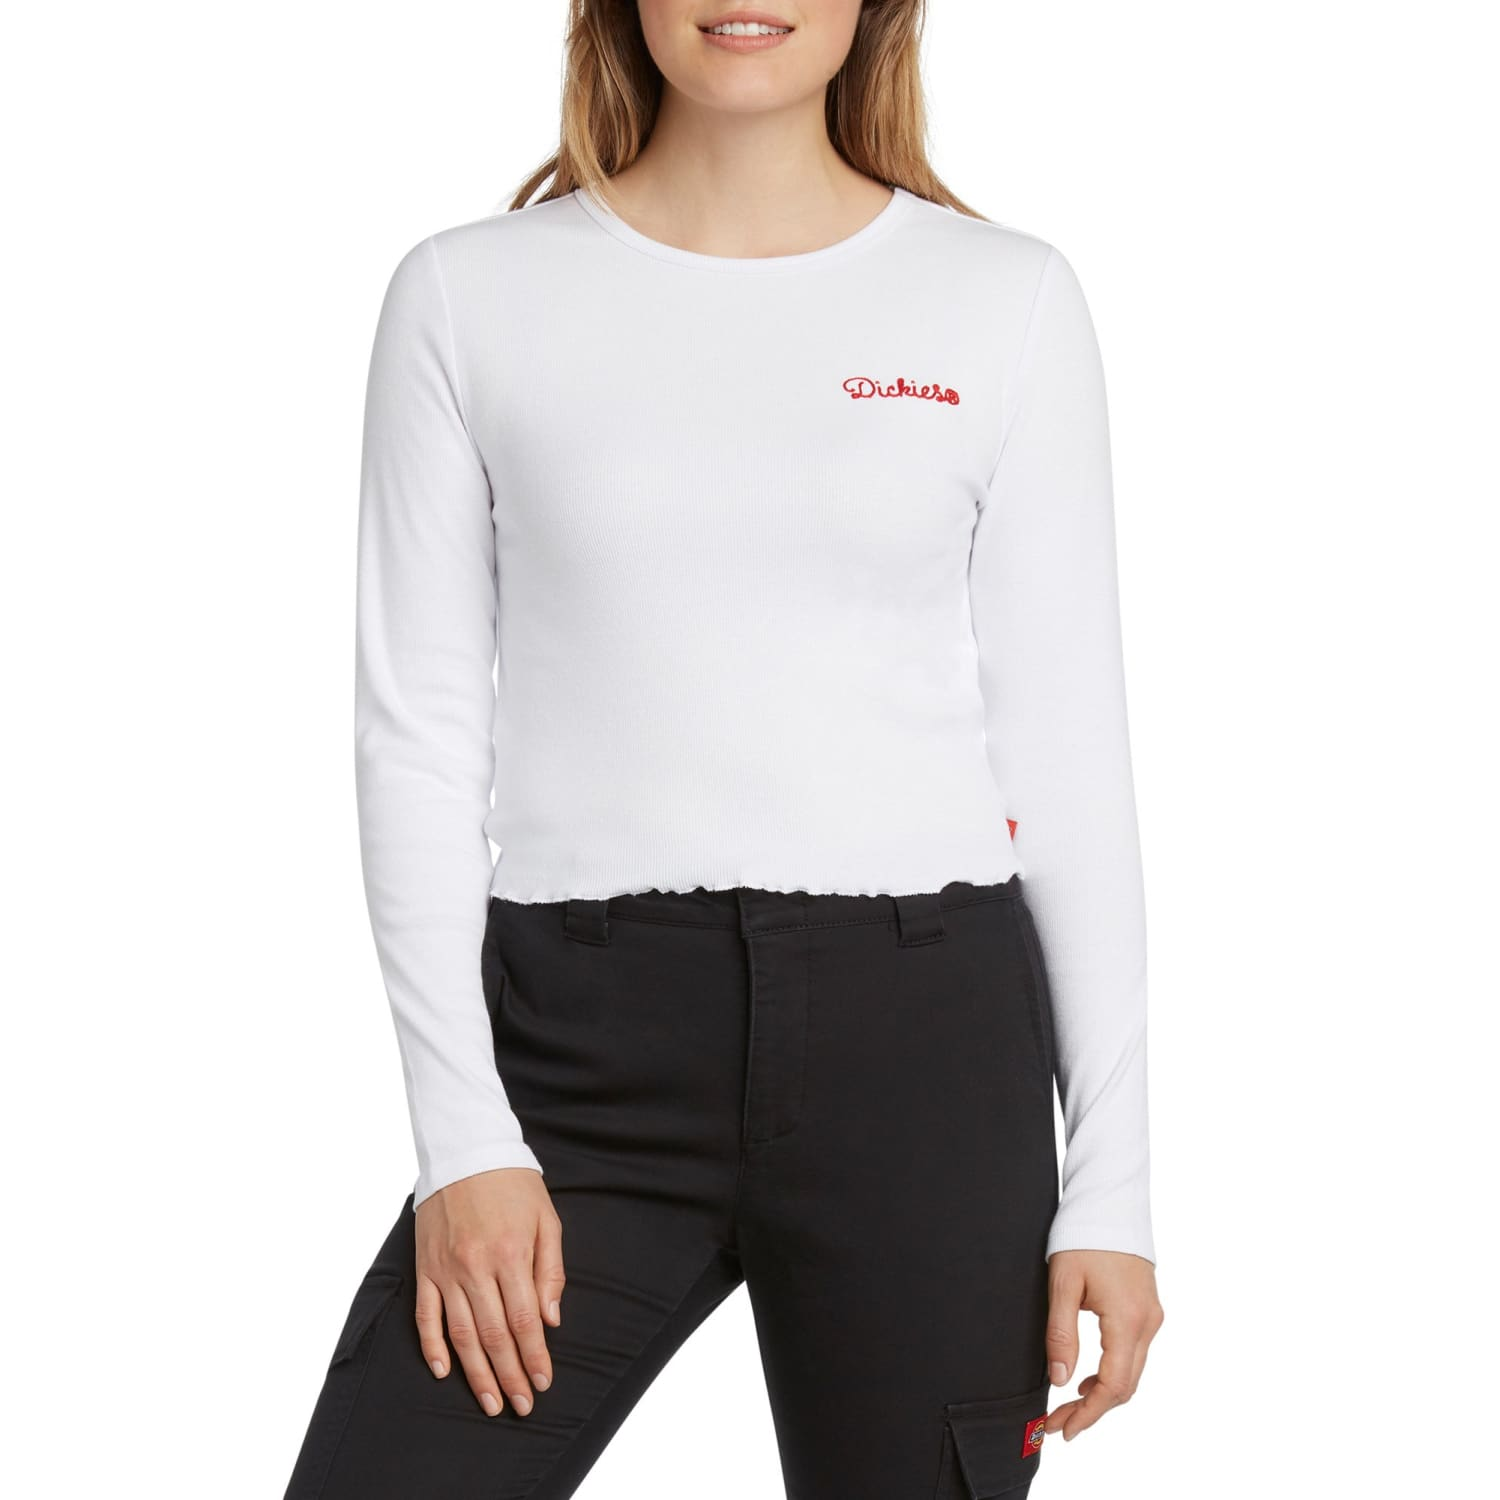 Dickies Girl Long Sleeve Baby Tee - White Girl, new Dickies,